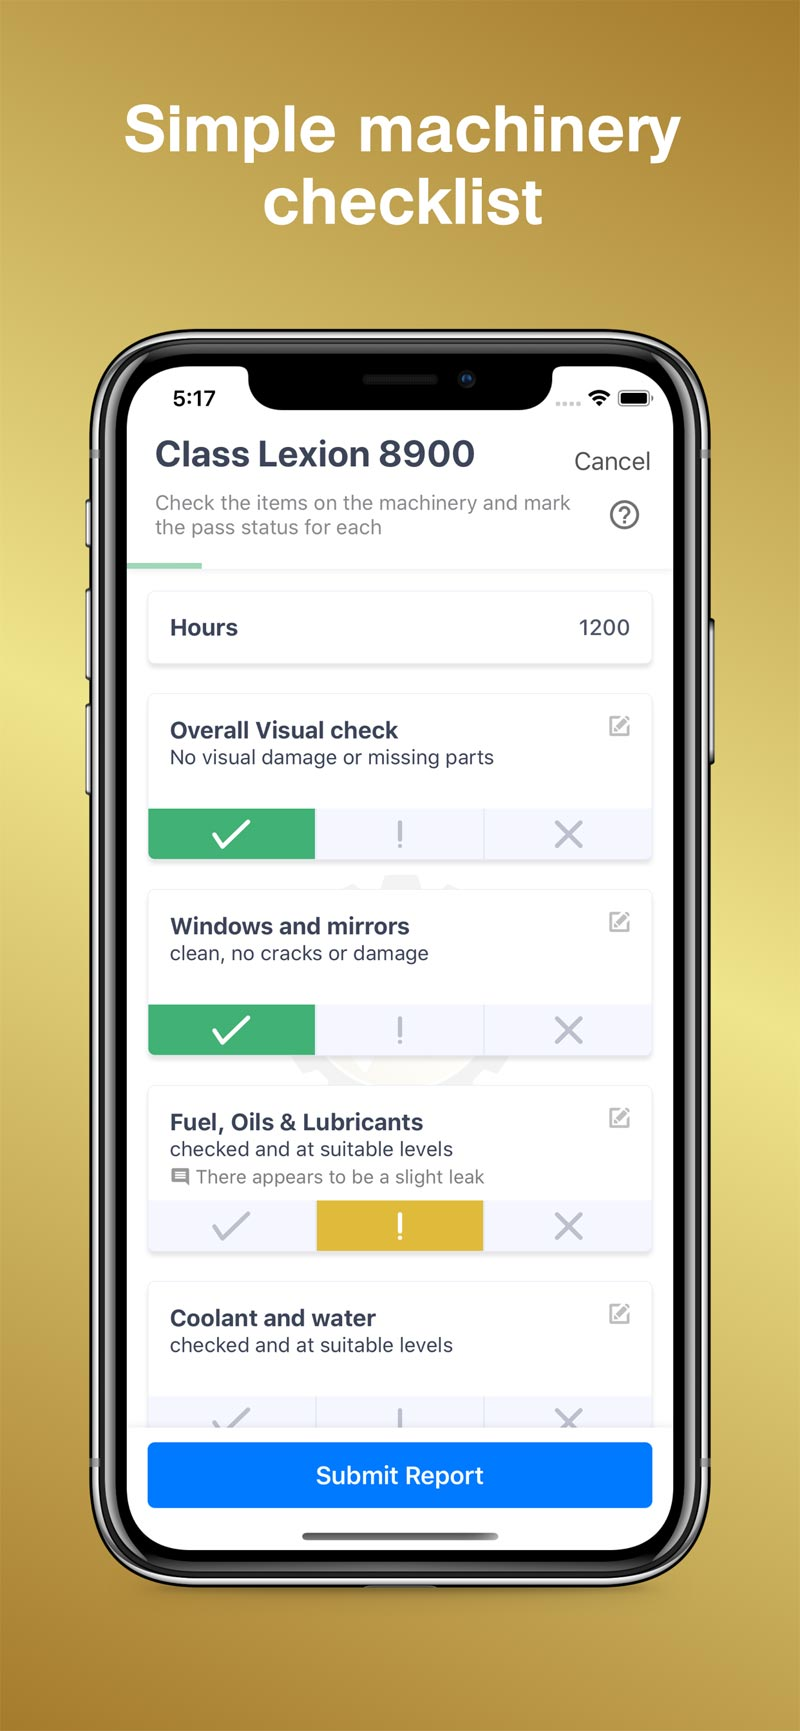 Merit AgCheck App Screenshot - Checklist